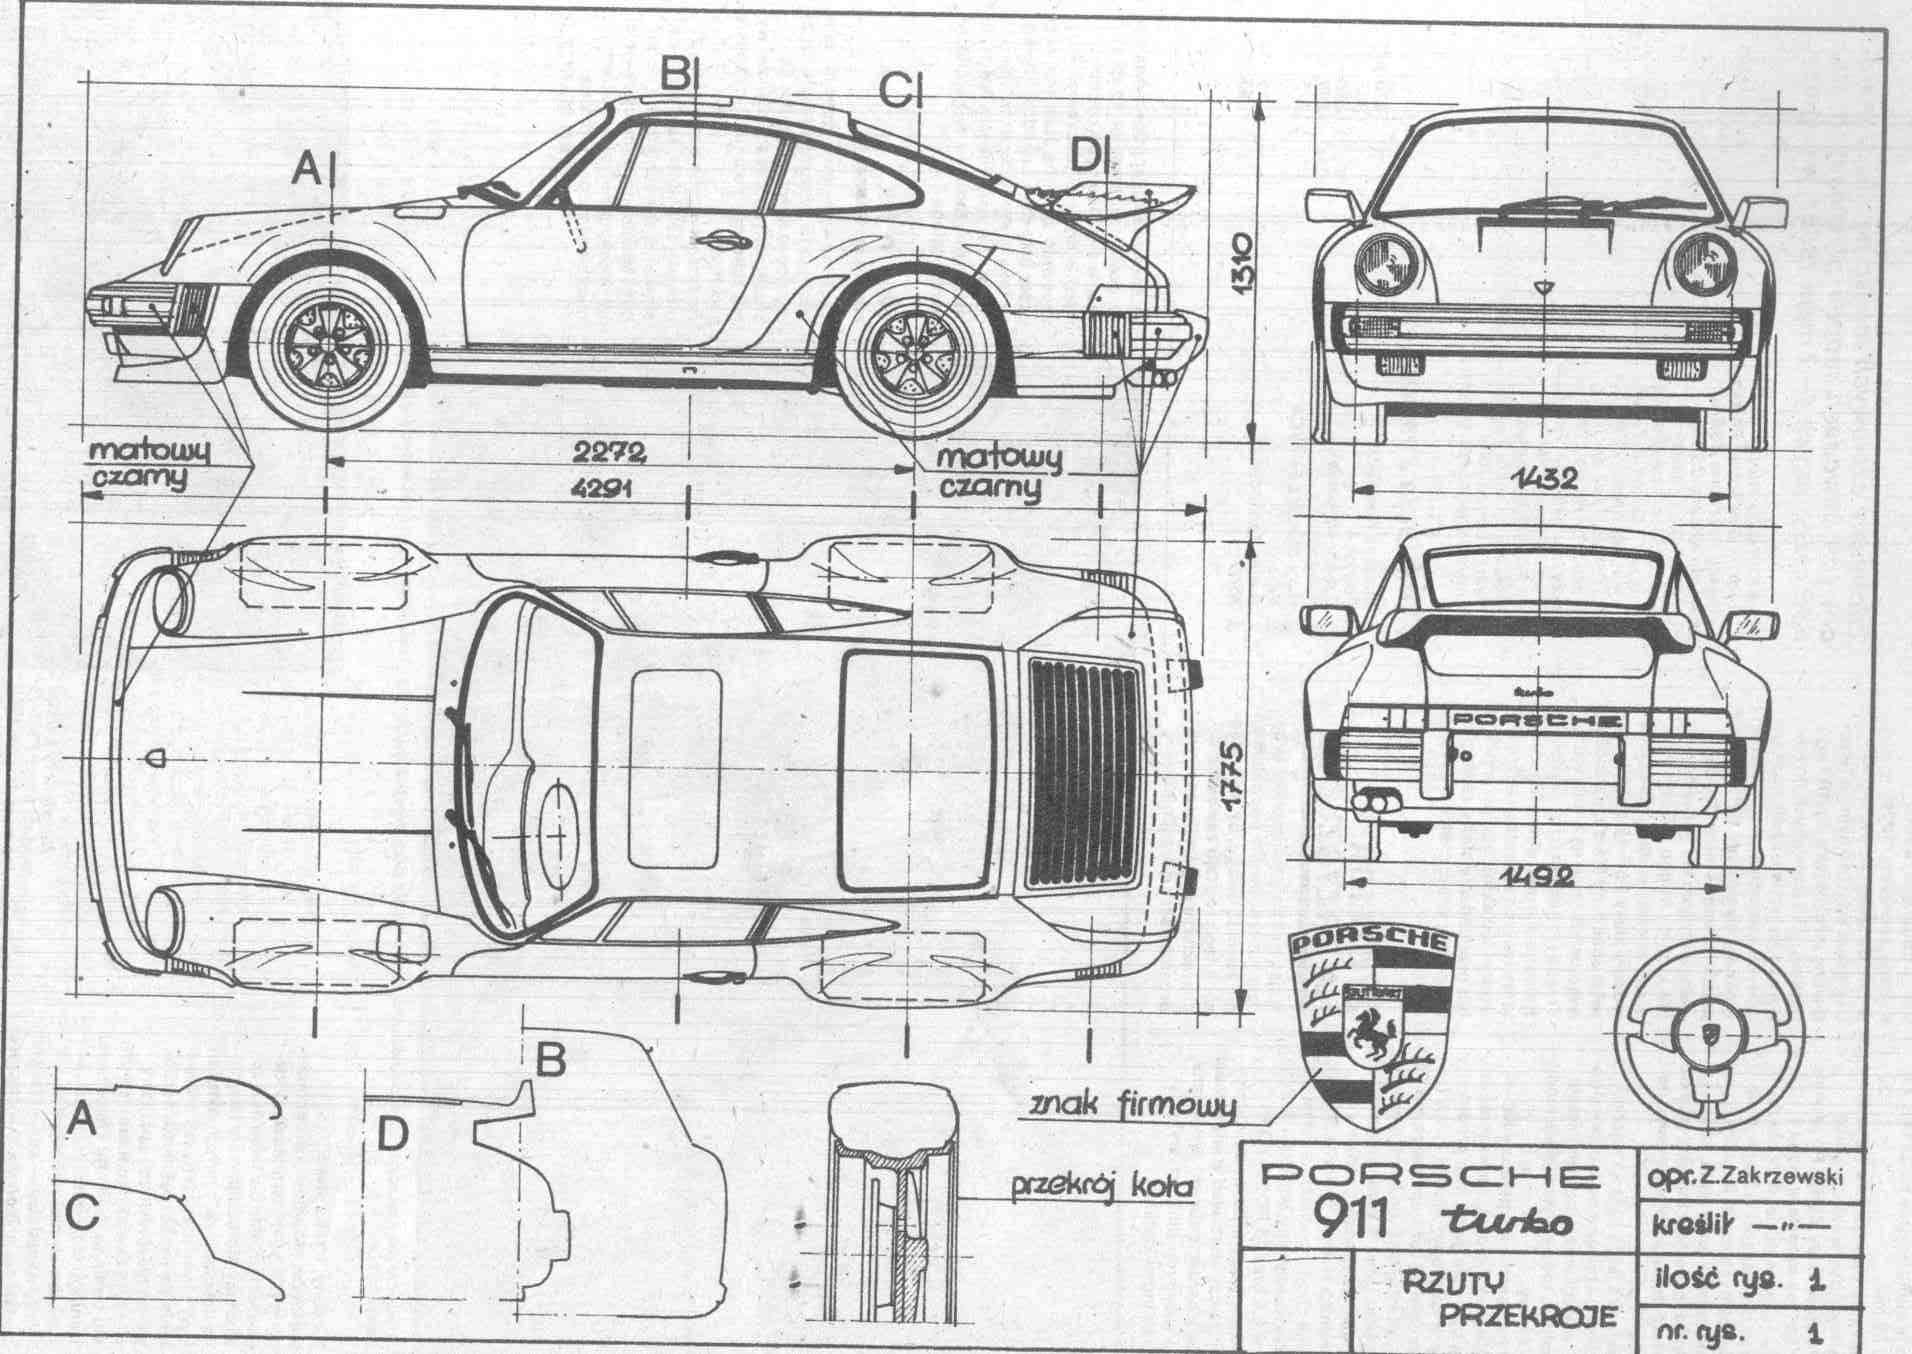 Porsche 911 turbo blueprint download free blueprint for for Plans de dessins de porche